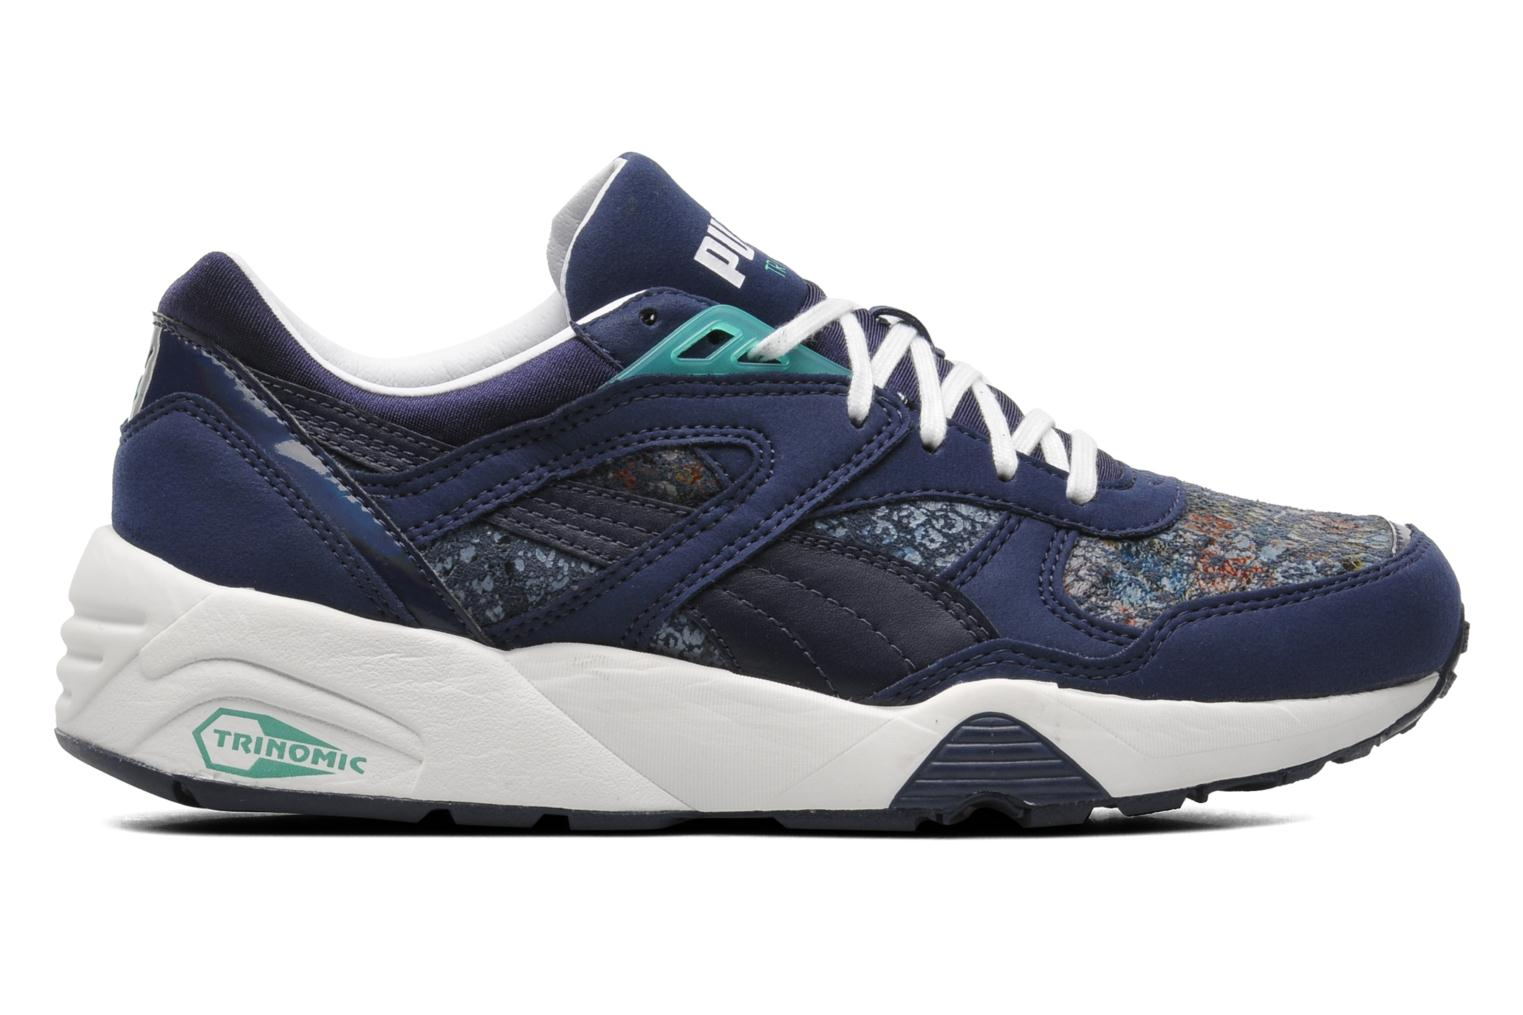 Puma Trinomic R698 Hyper Wn's Sport shoes in Blue at Sarenza.co.uk (193998)